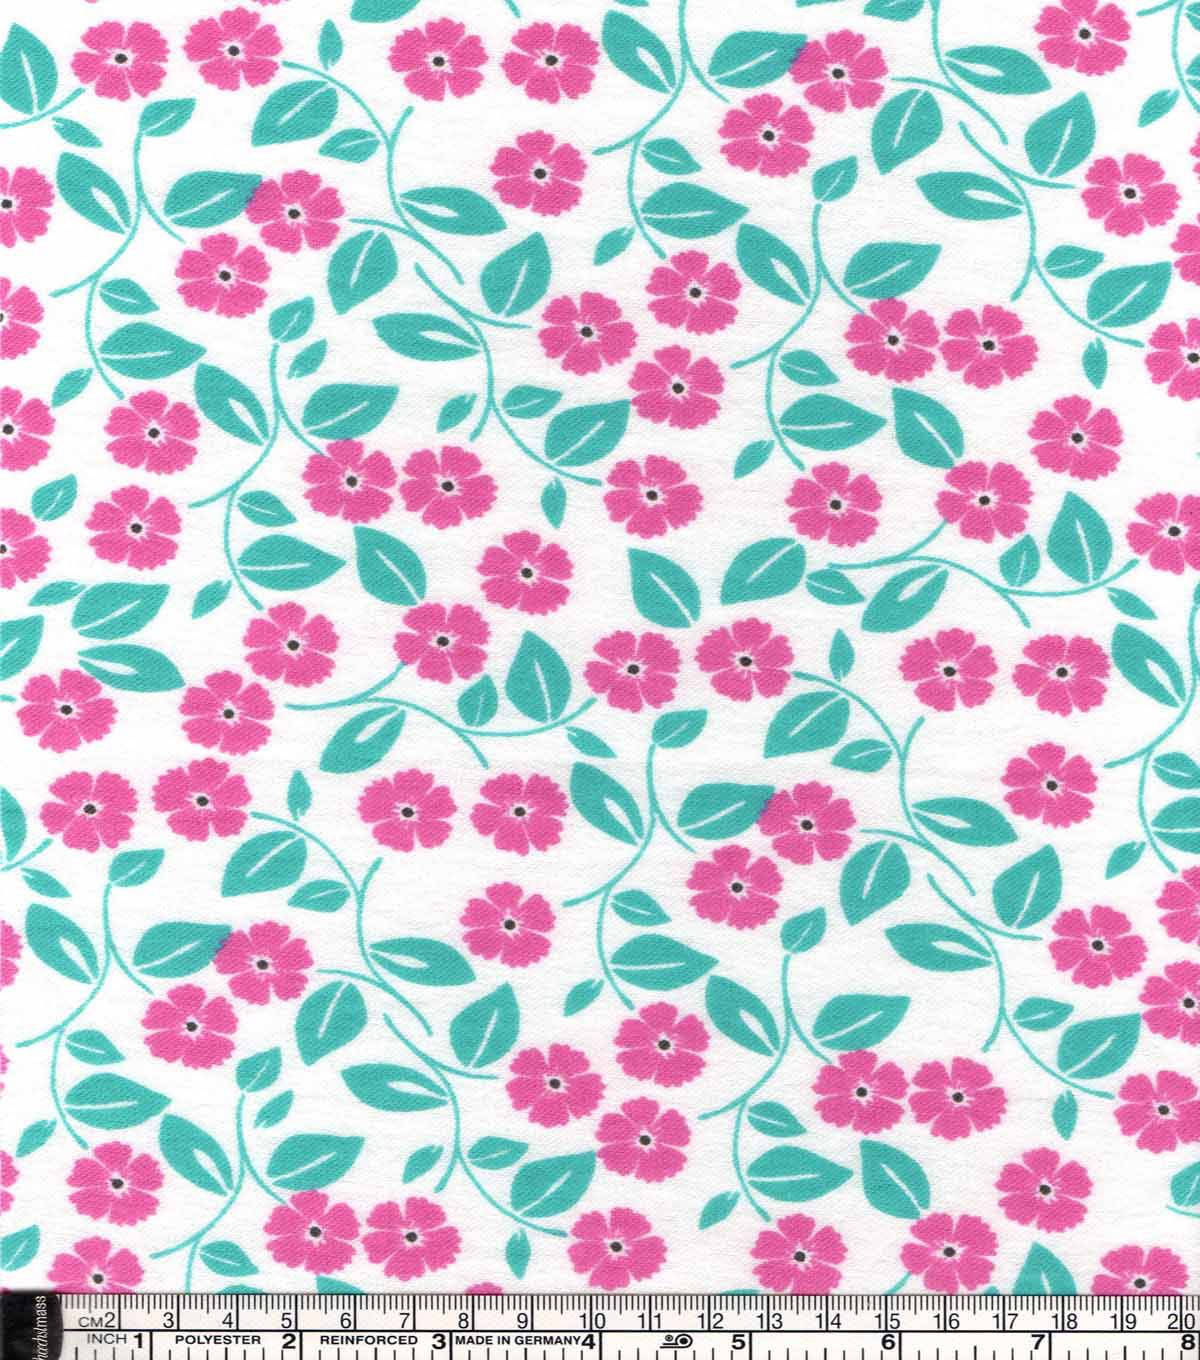 Snuggle Flannel Fabric -Spring Crocus Floral